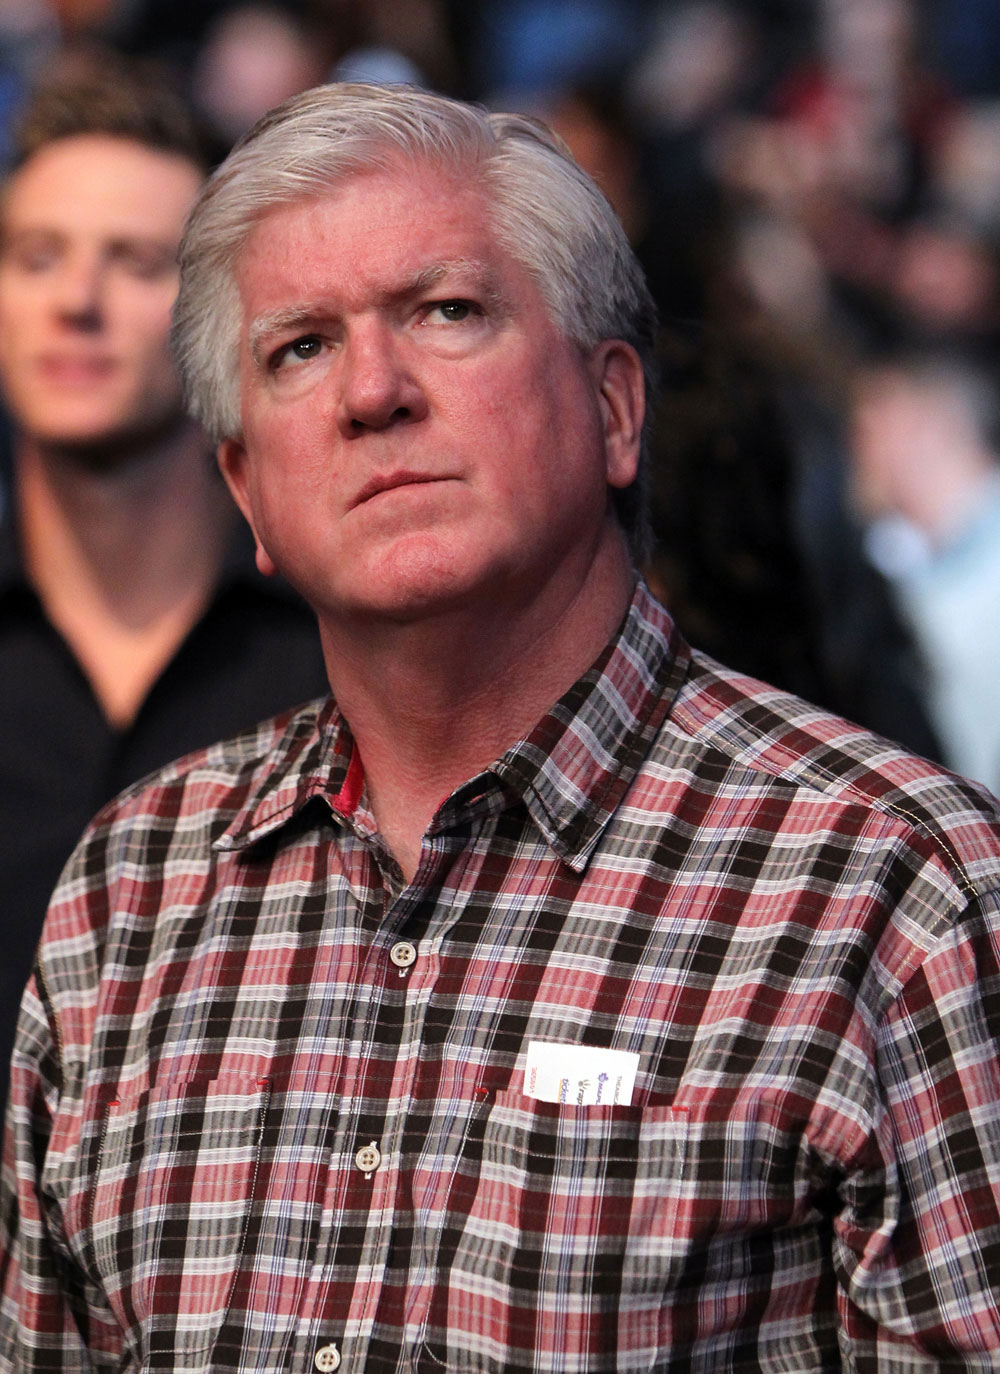 TORONTO, ON - DECEMBER 10:  Former Toronto Maple Leafs head coach Pat Quinn attends the UFC 140 event at Air Canada Centre on December 10, 2011 in Toronto, Ontario, Canada.  (Photo by Josh Hedges/Zuffa LLC/Zuffa LLC via Getty Images)